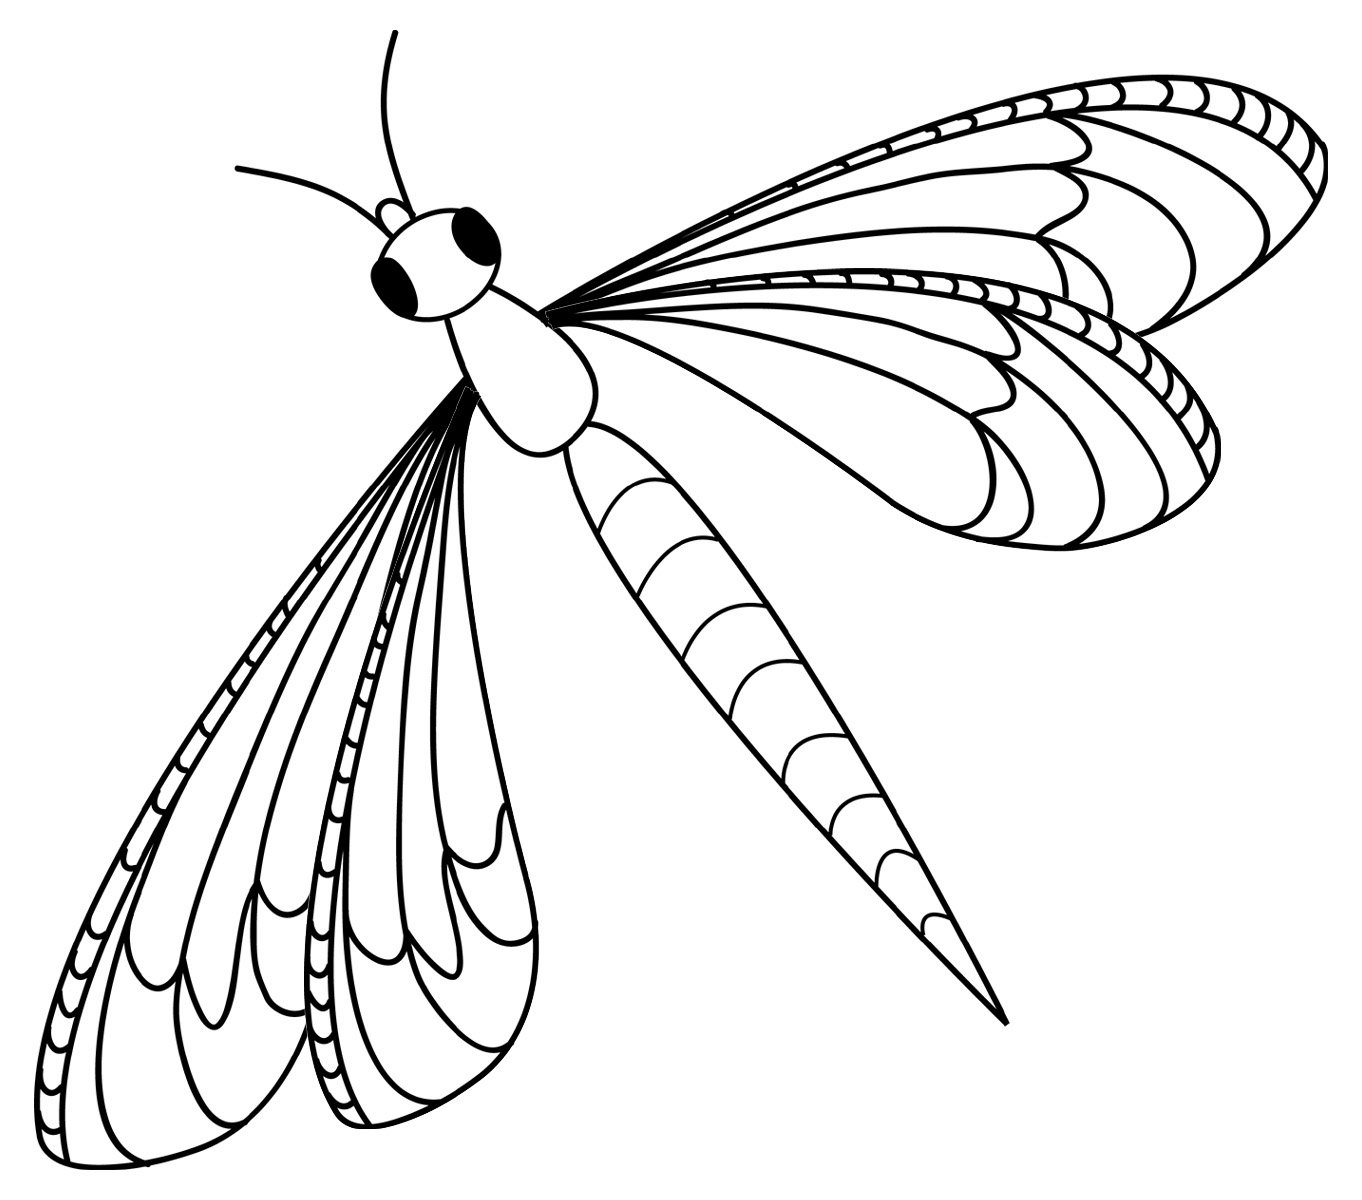 Dragonfly Outline Clipart.